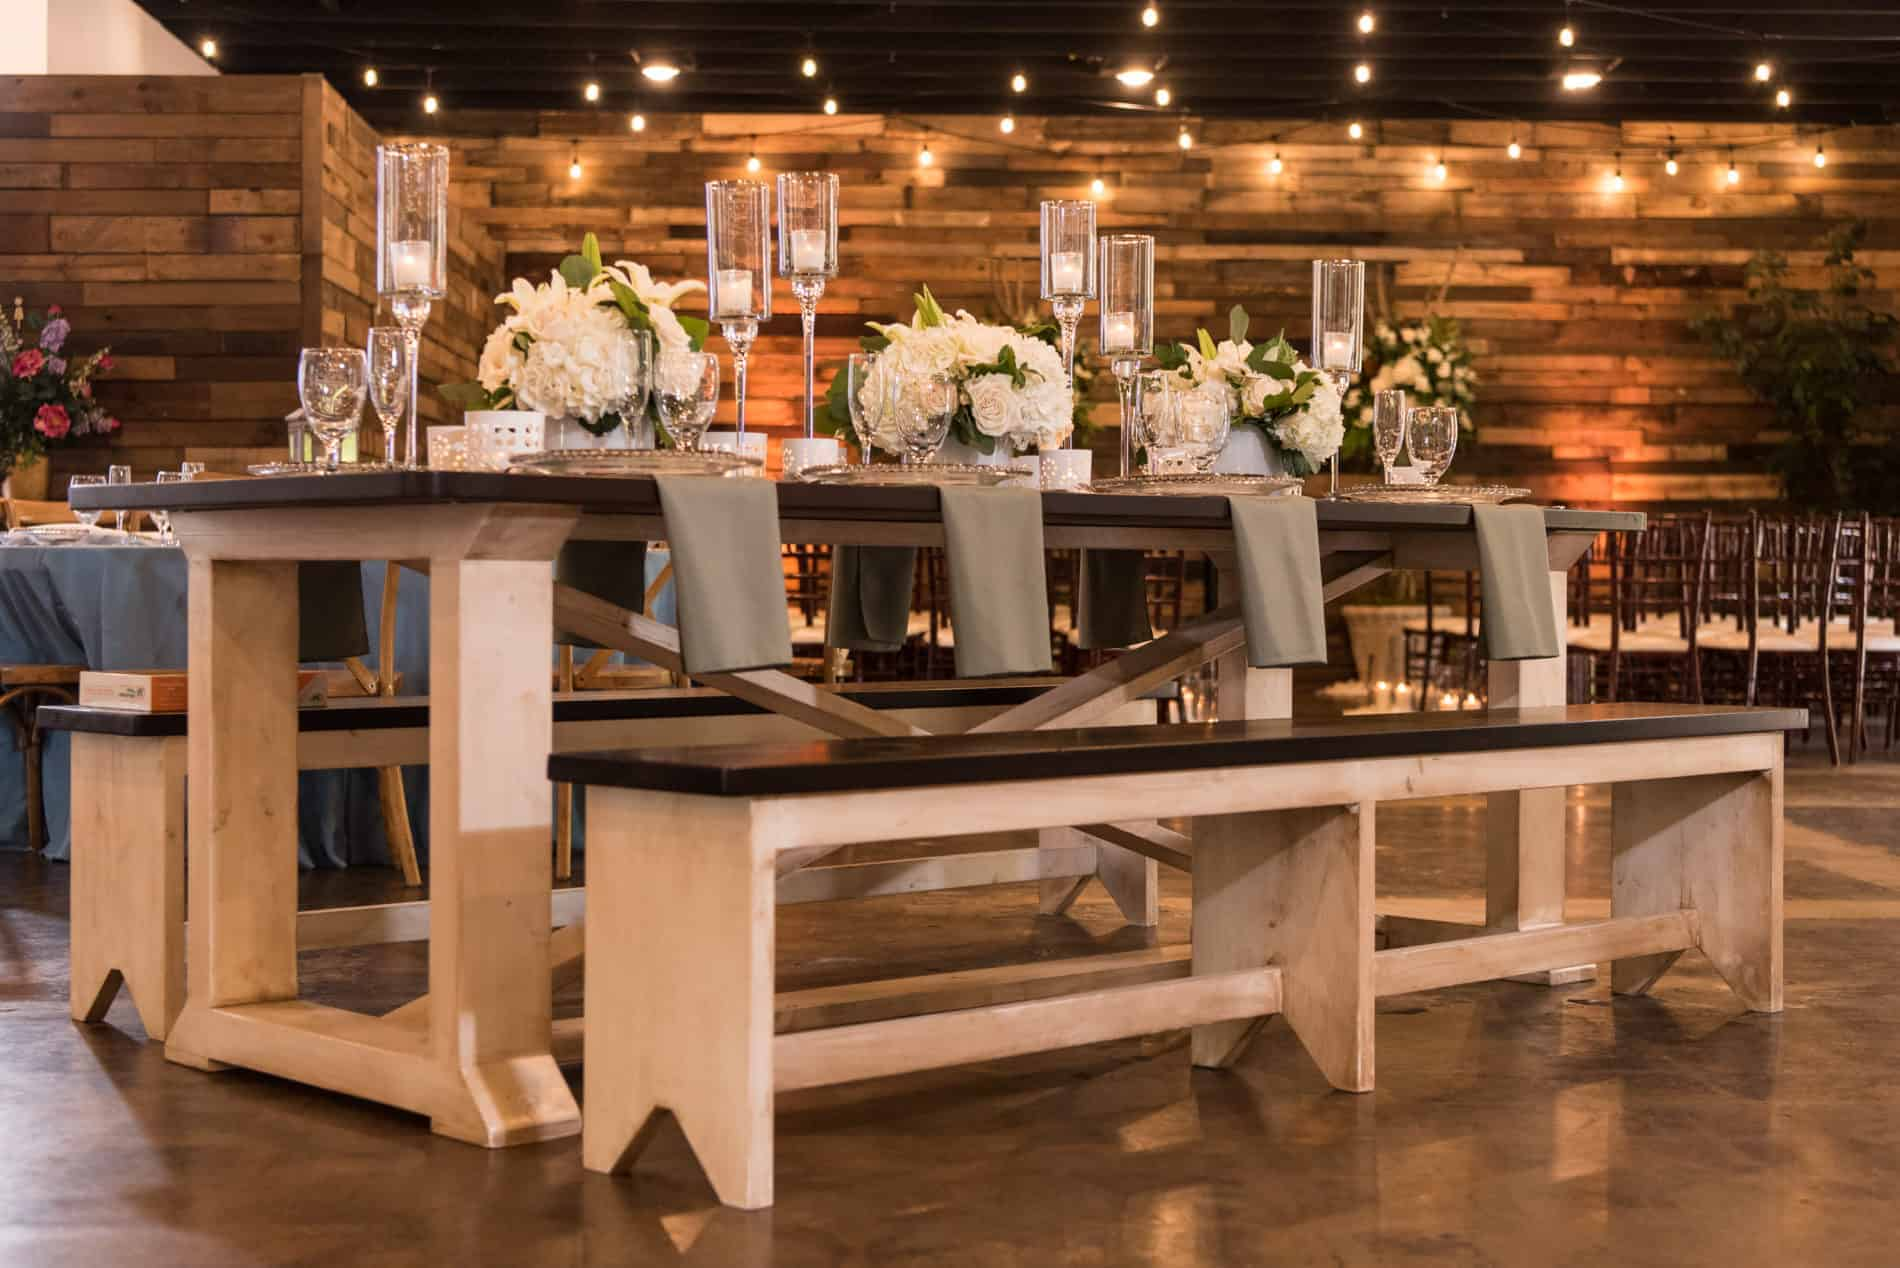 Top Rustic Wedding Ideas